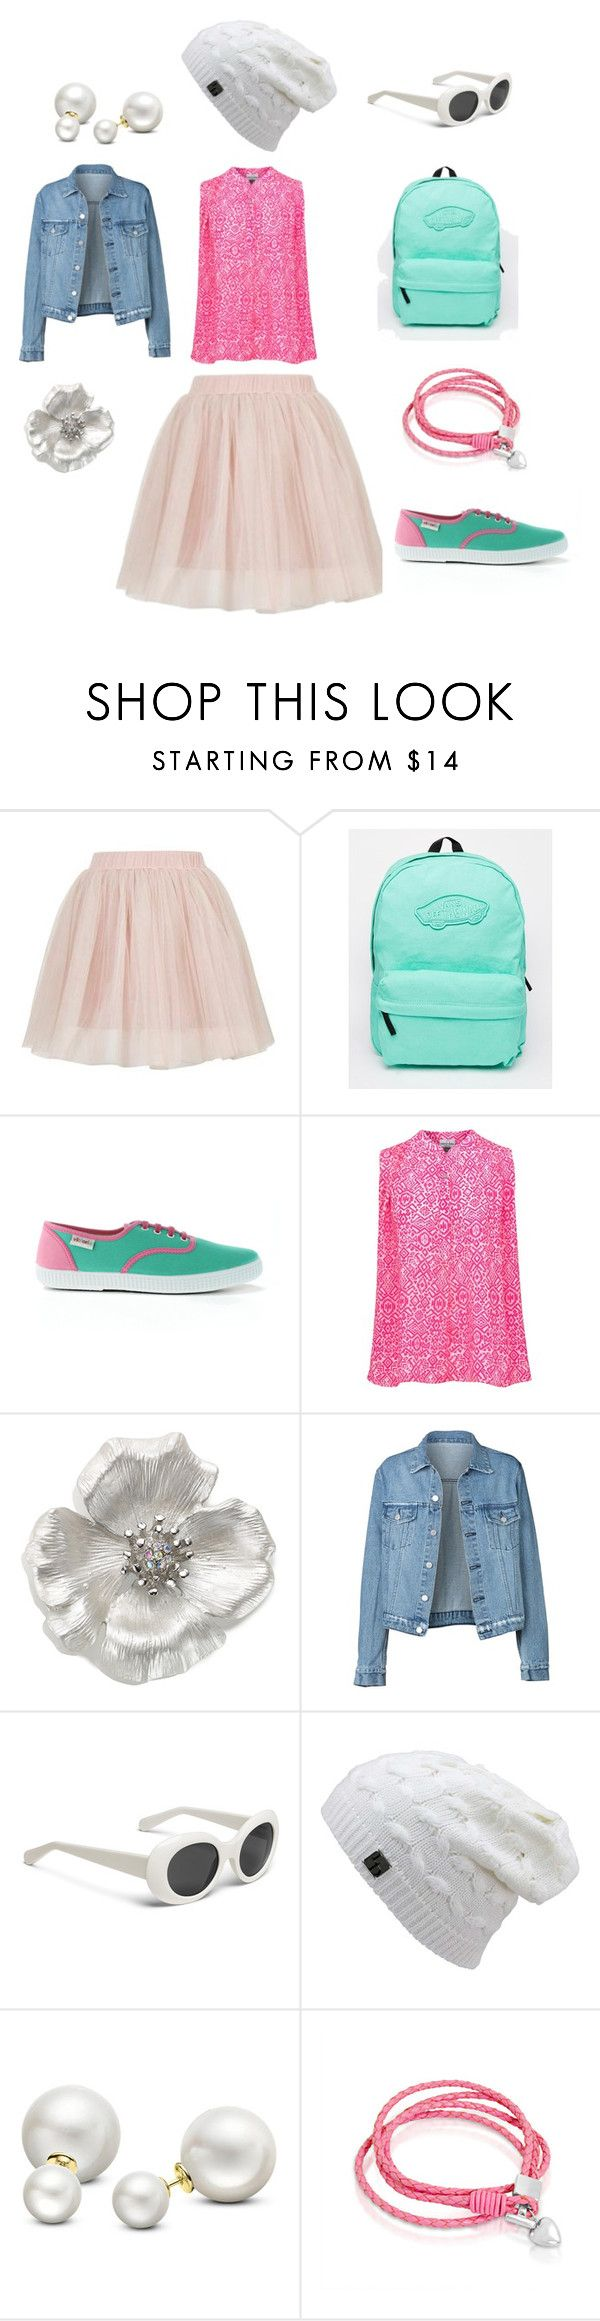 """молодежный стиль"" by alisaliman ❤ liked on Polyvore featuring Topshop, Vans, Victoria, Mercy Delta, Allurez and Oxford Ivy"